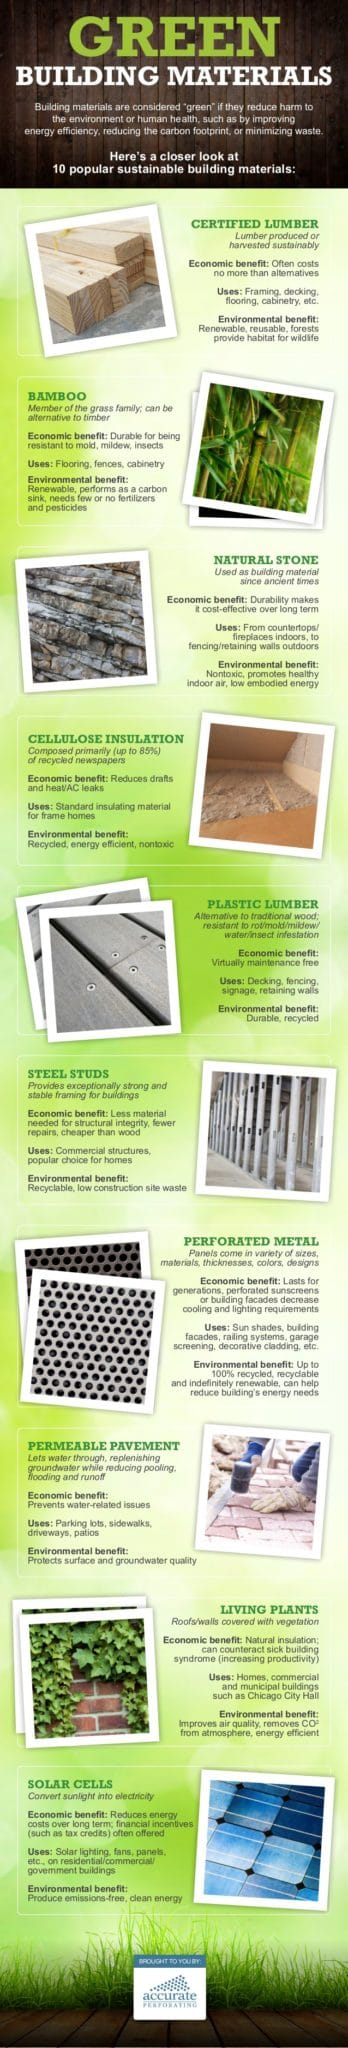 Green Building Materials Infographic